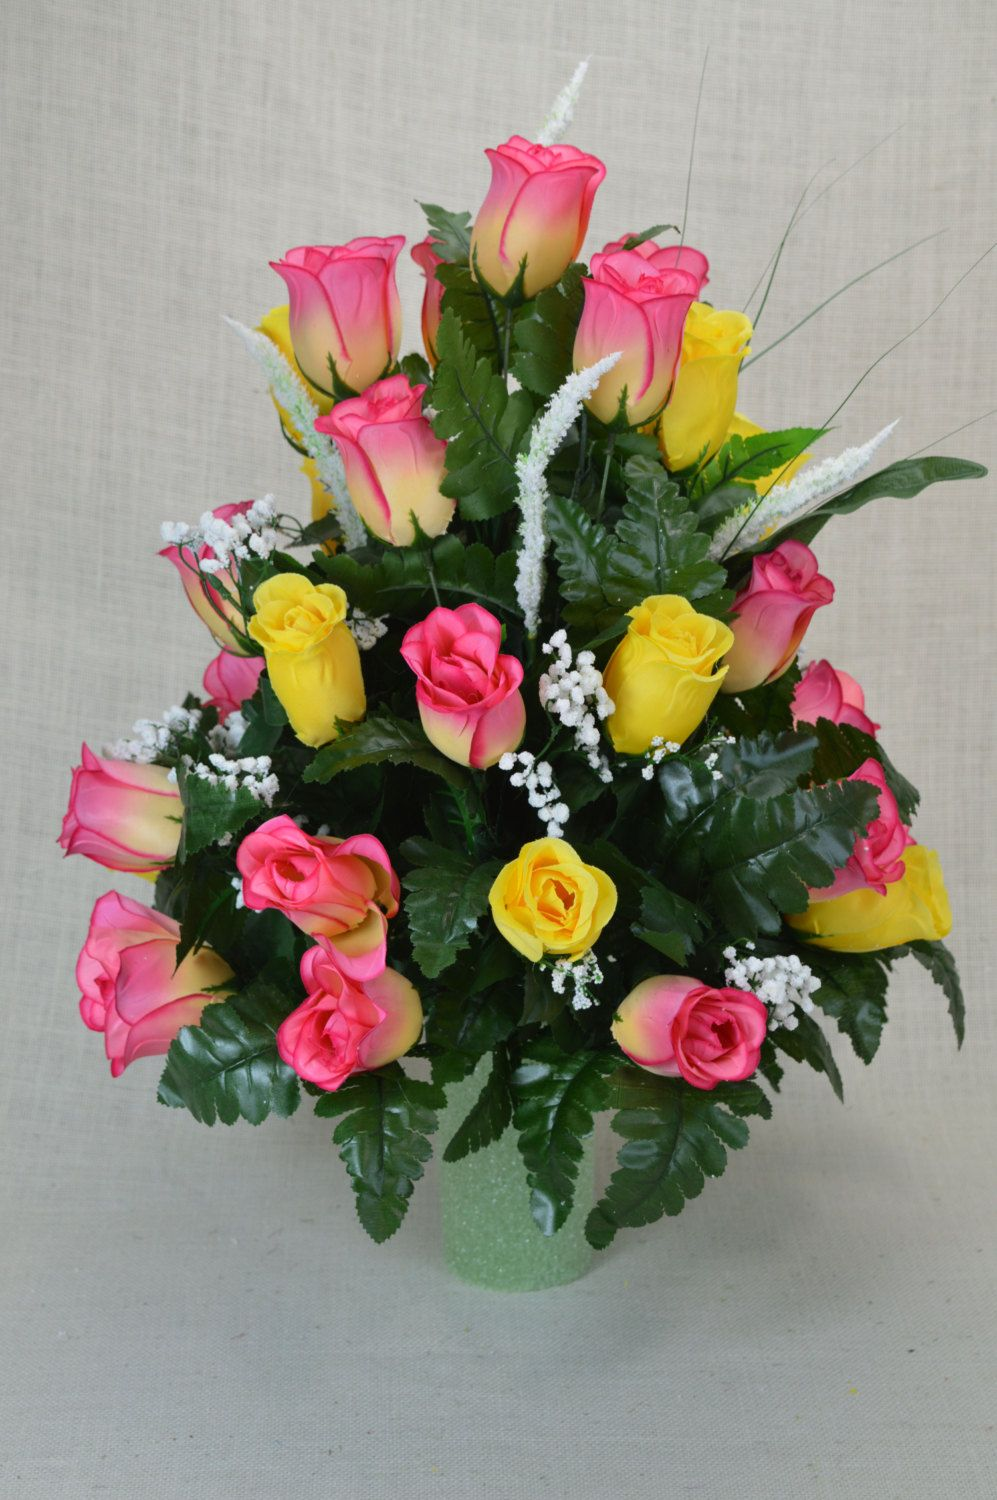 No R101 Yellow And Hot Pink Rose Cemetery Flower Spring Cone Flower Cone Arrangement Grav Cemetery Flowers Artificial Flower Arrangements Funeral Flowers